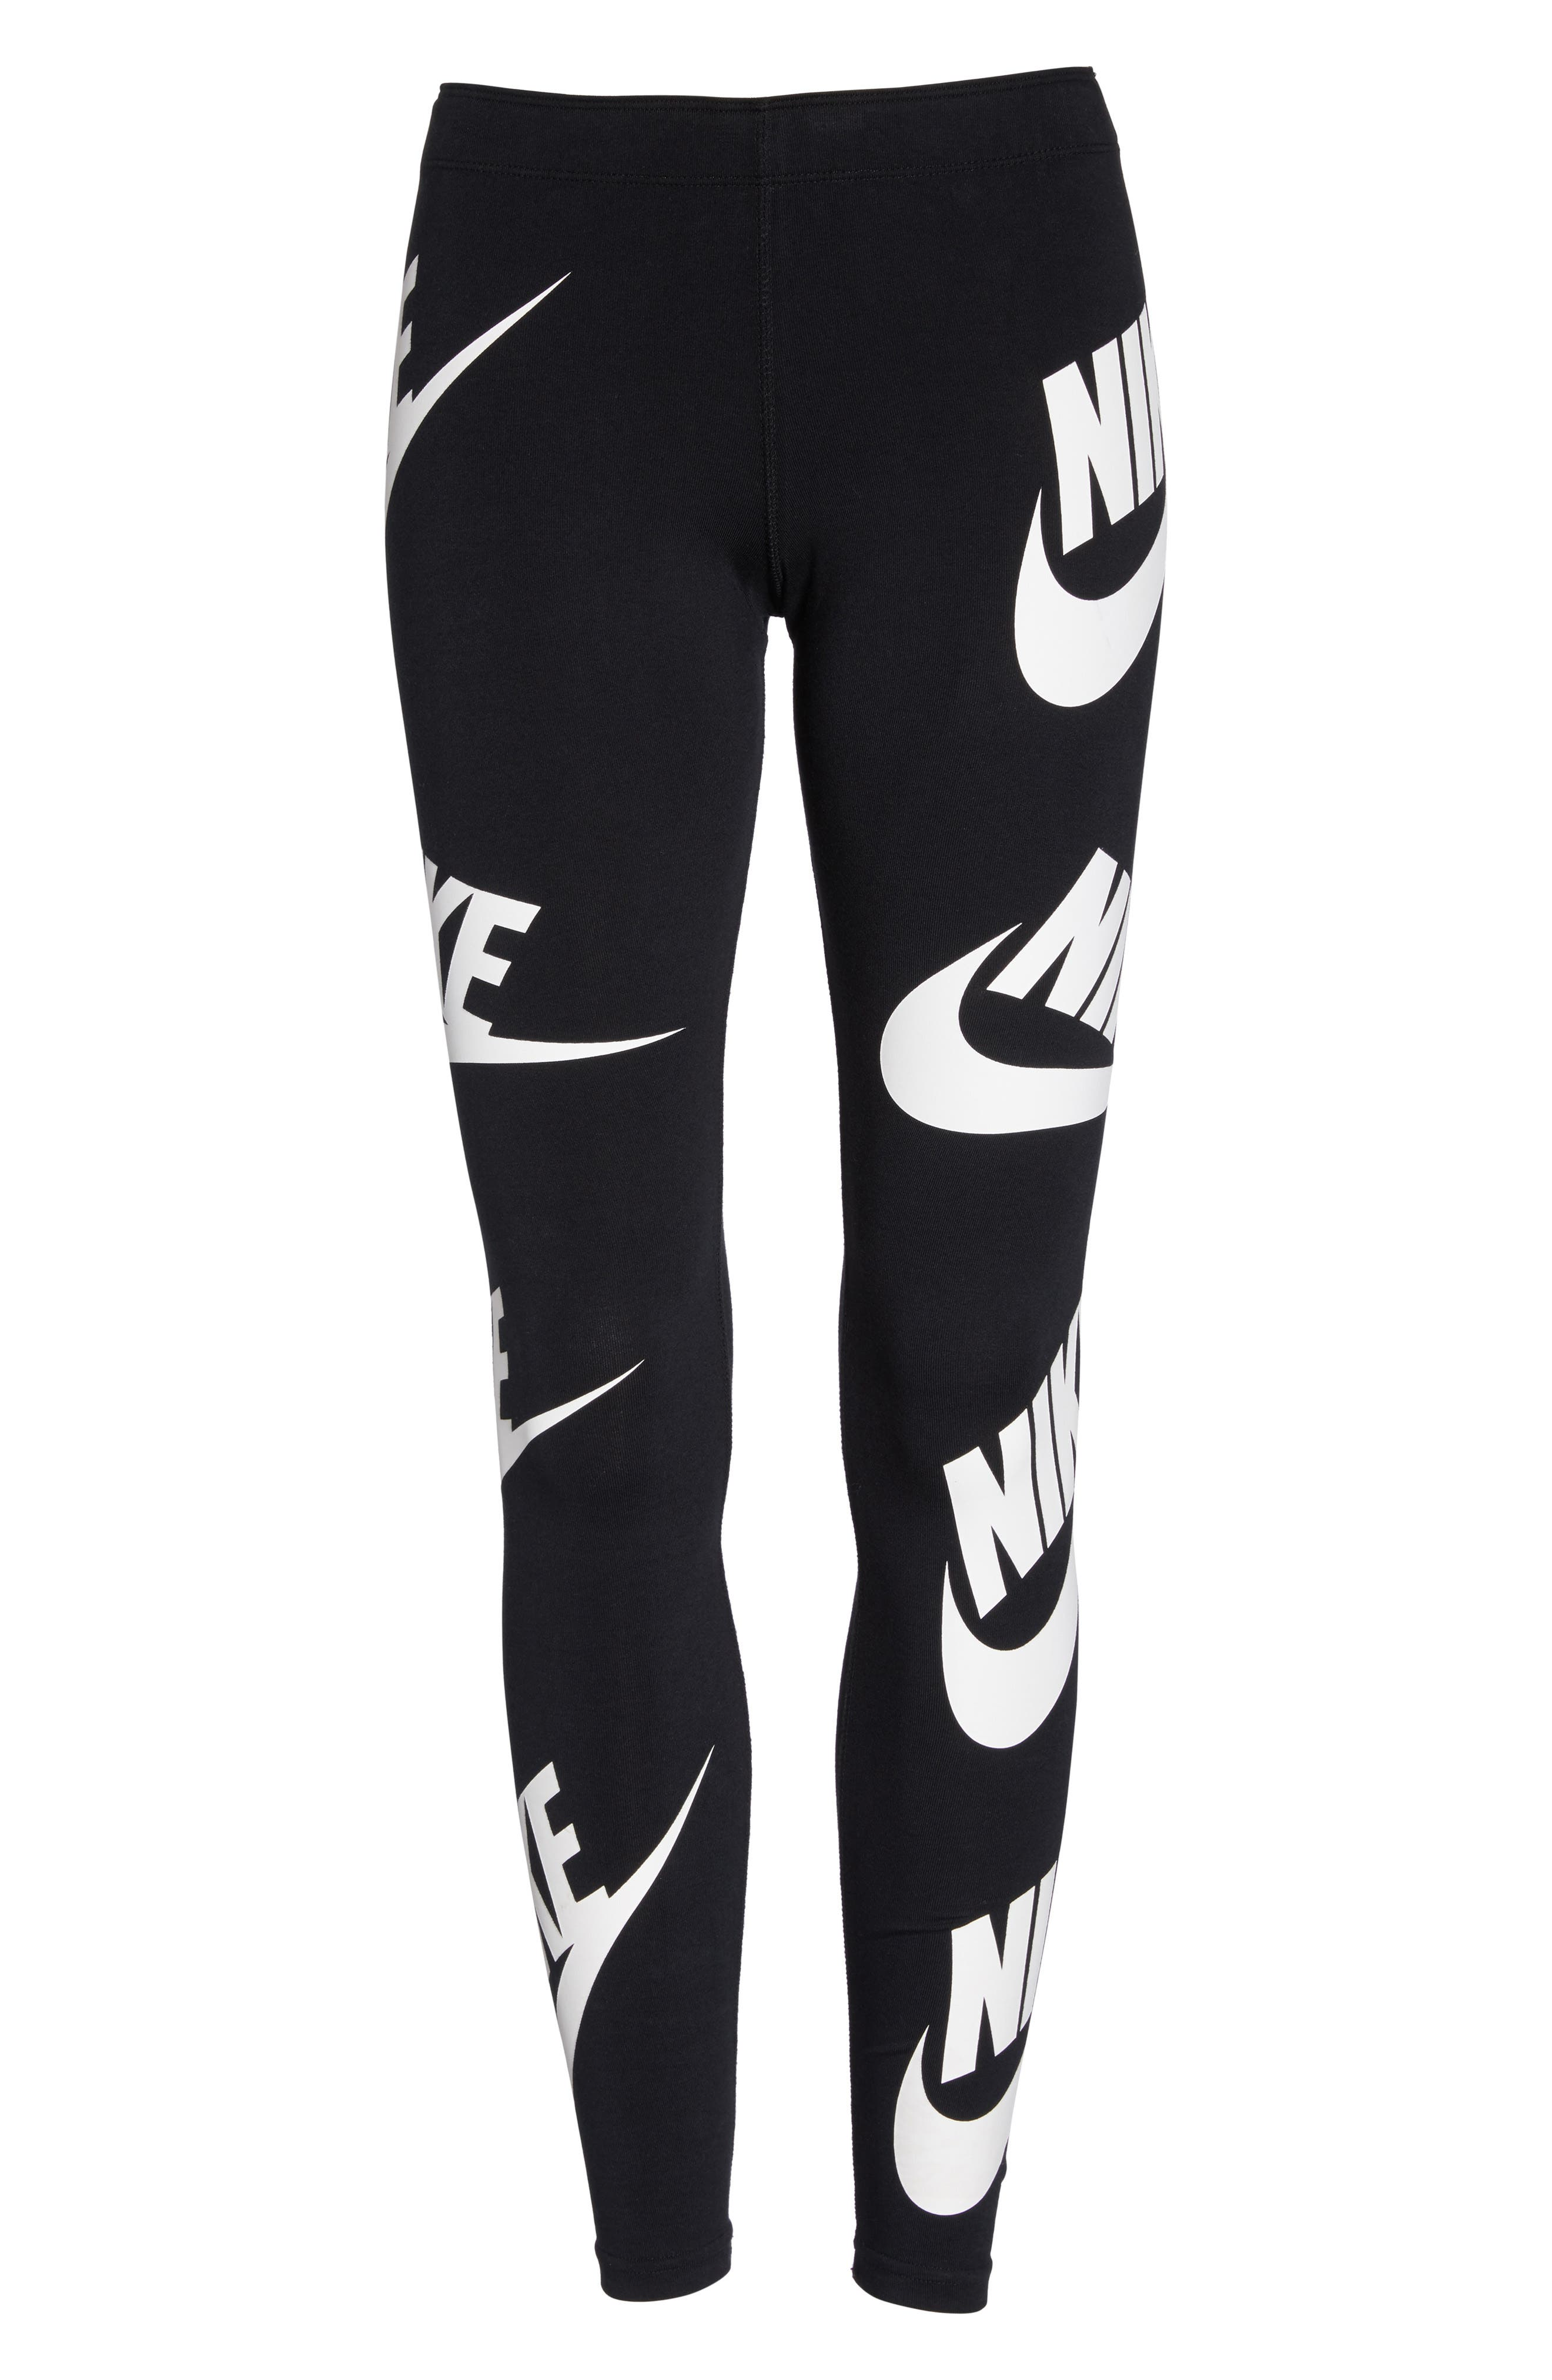 Sportswear Graphic Leggings,                             Alternate thumbnail 22, color,